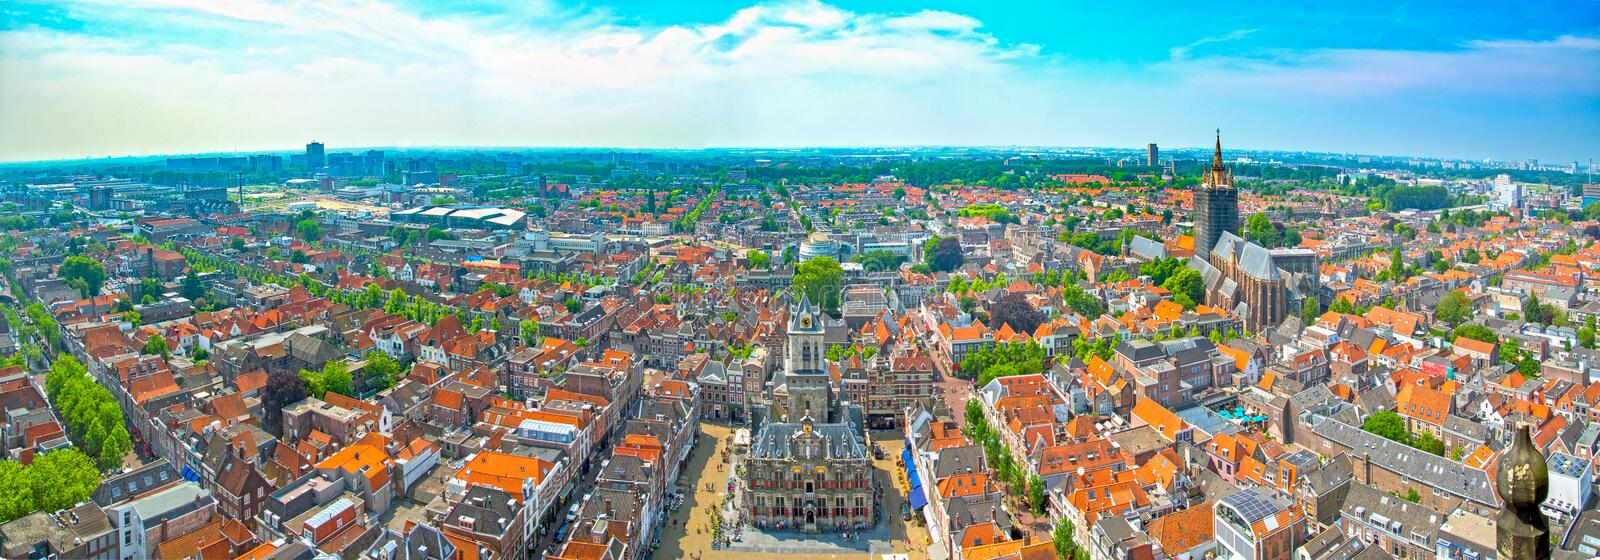 Delft in the Netherlands. Panorama of Delft in South Holland, the Netherlands stock photo